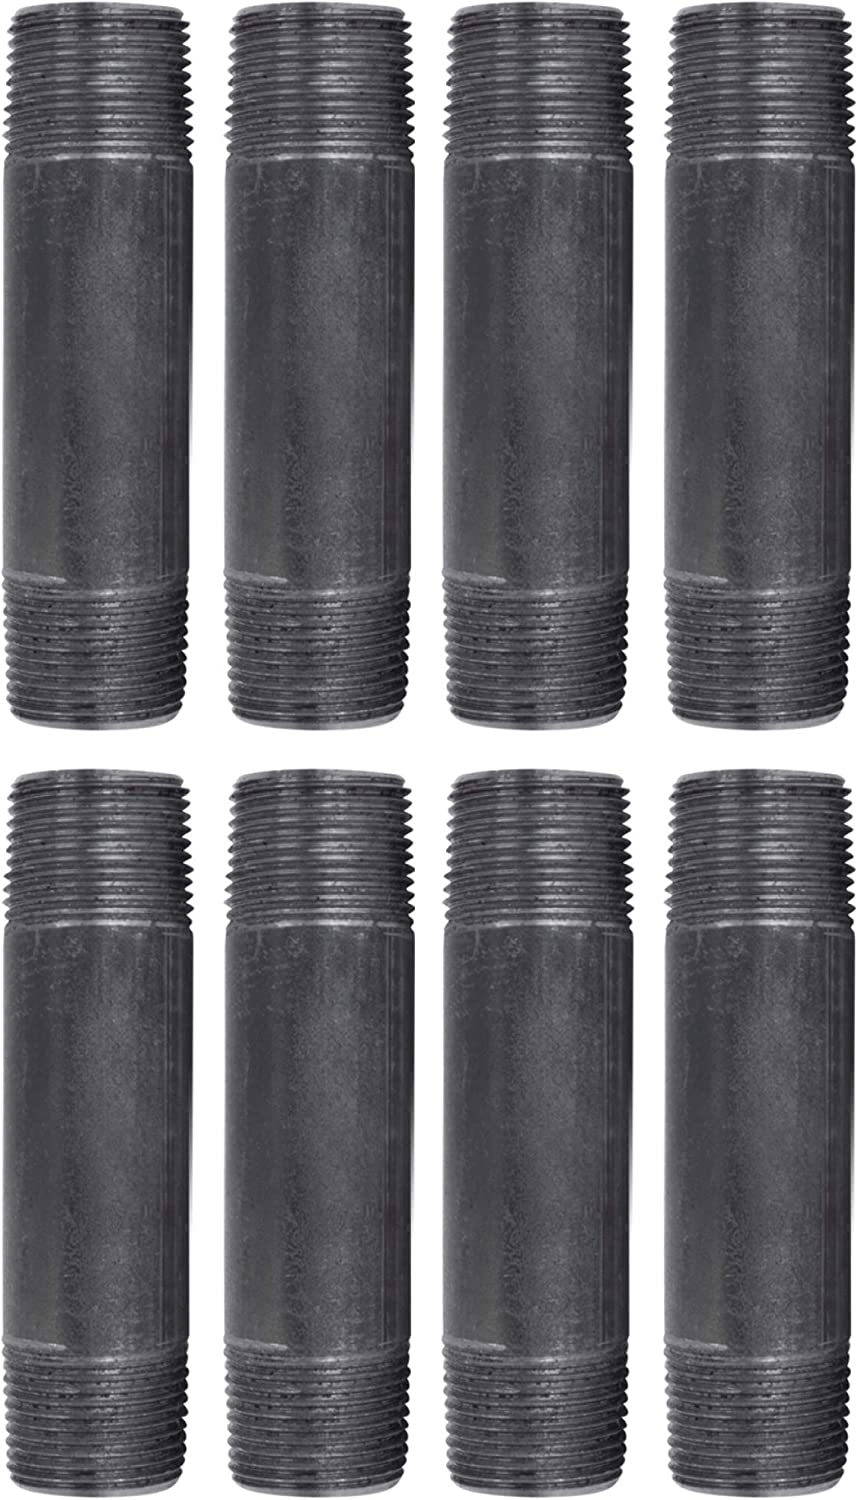 """Pipe Decor 3/4"""" x 4"""" Malleable Cast Iron Pipe, Pre Cut, Industrial Steel Grey Fits Standard Three Quarter Inch Black Threaded Pipes Nipples and Fittings, Build Vintage DIY Furniture, 8 Pack : Industrial & Scientific"""